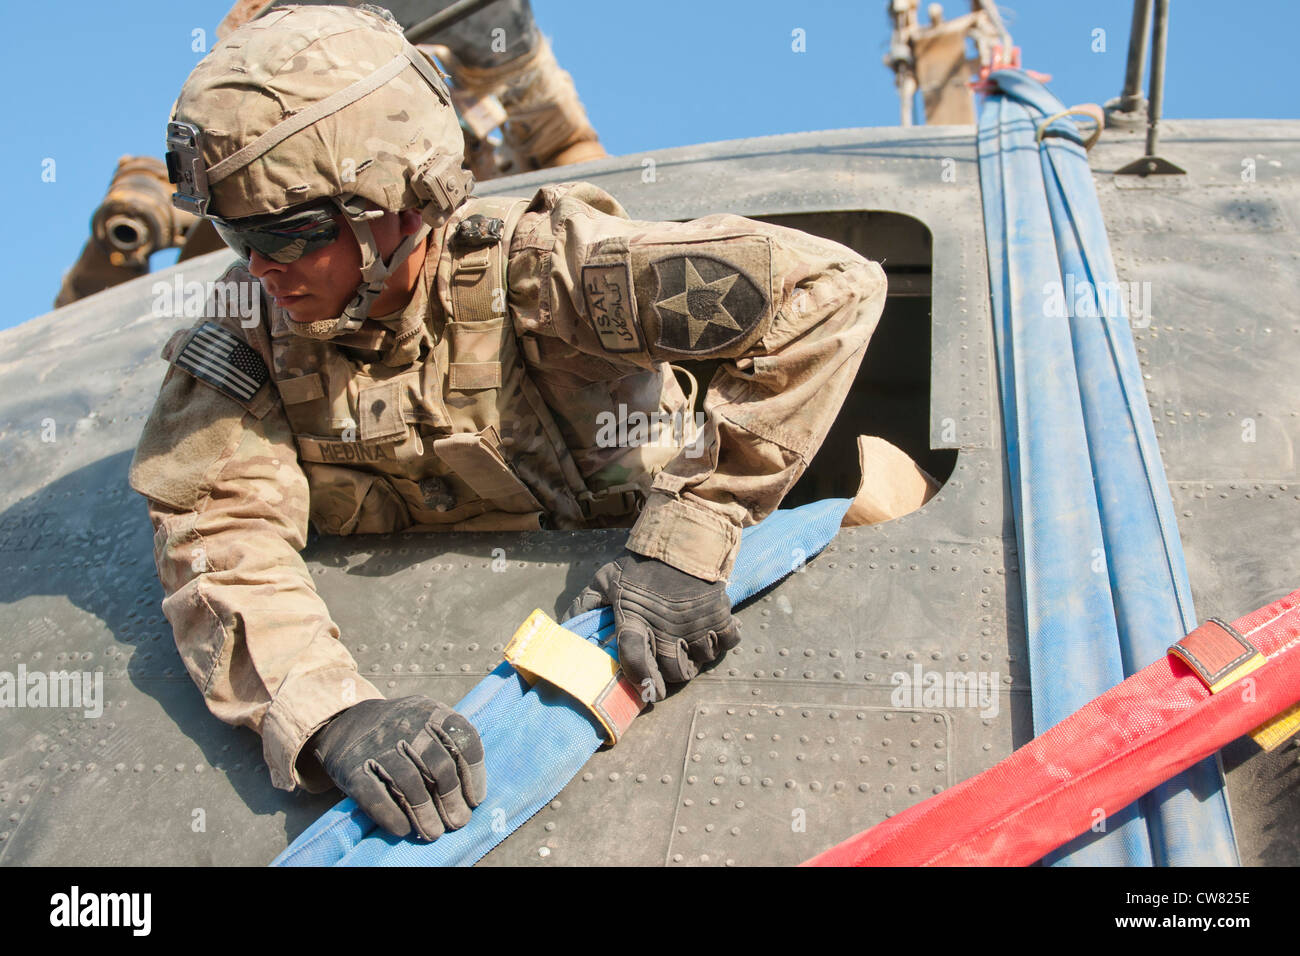 Spc. Rodrigo Medina, who serves as a stryker maintainer and recovery operator with the Logistical Support Team, - Stock Image